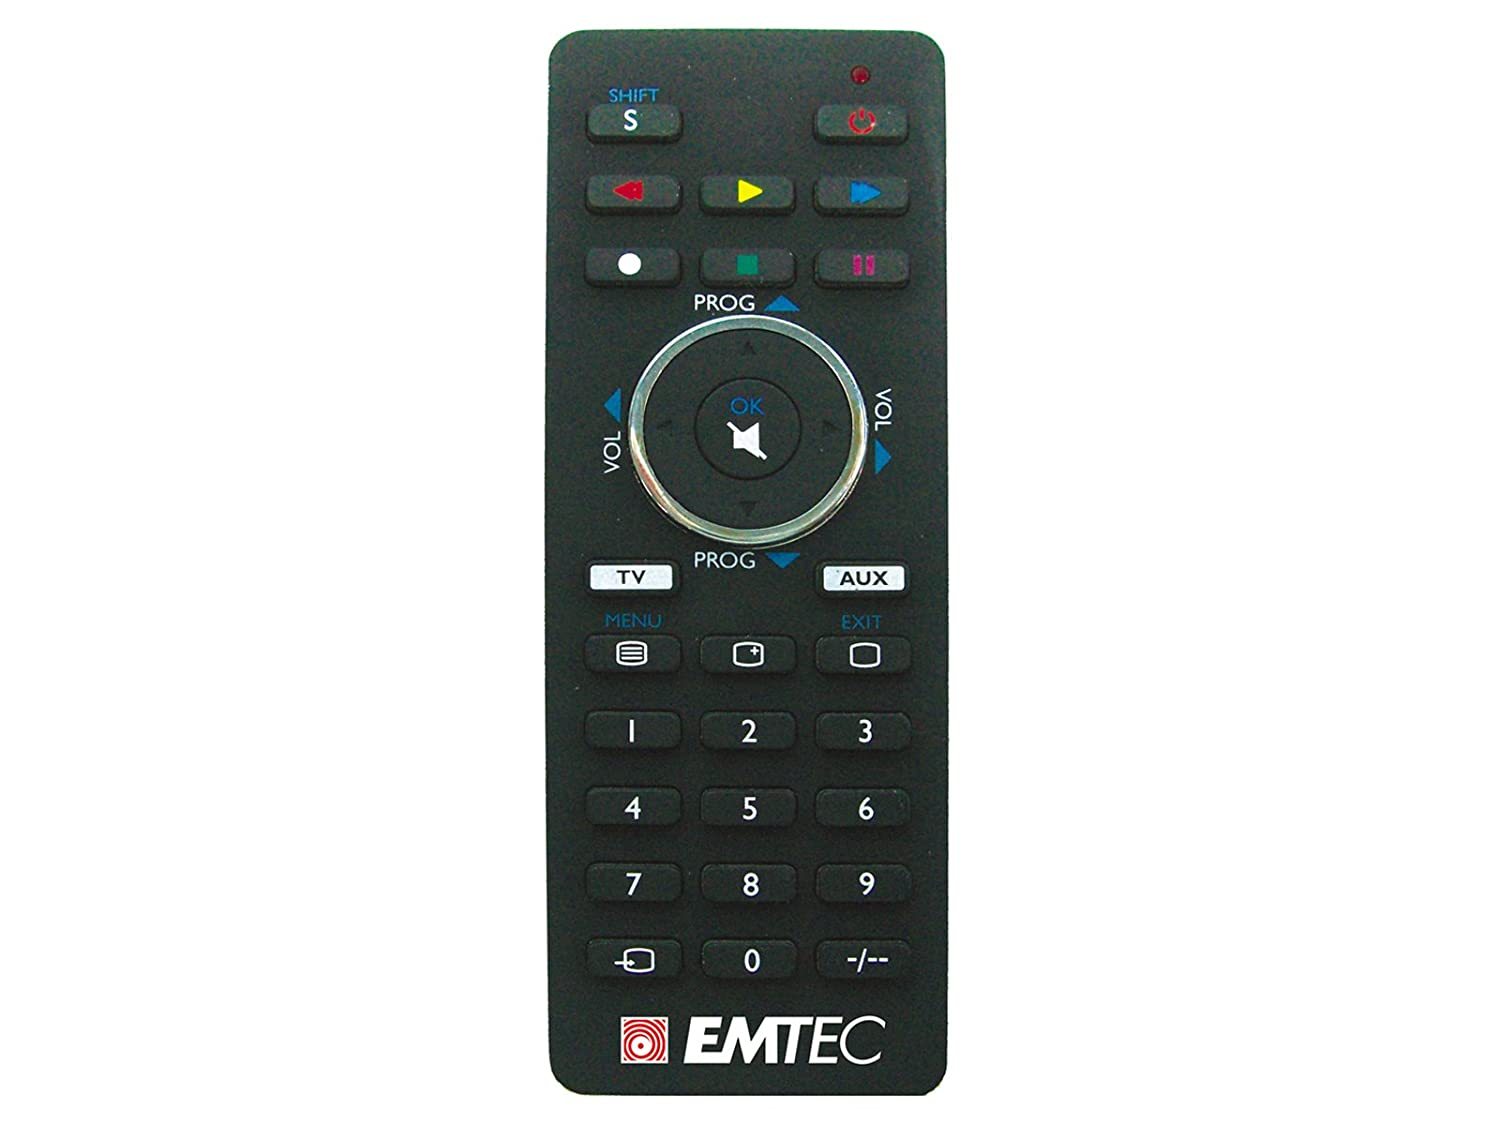 with remote control